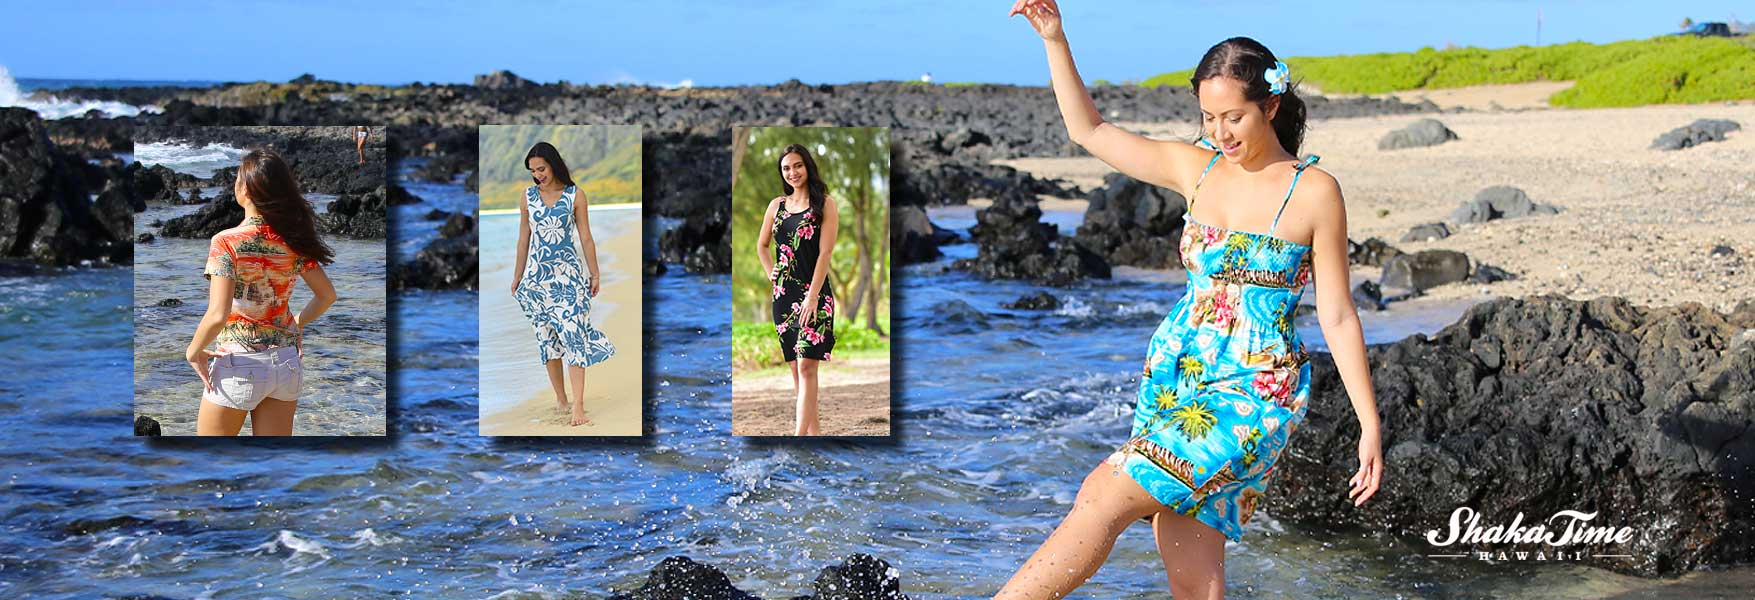 Women Hawaiian Clothes and Summer Apparel